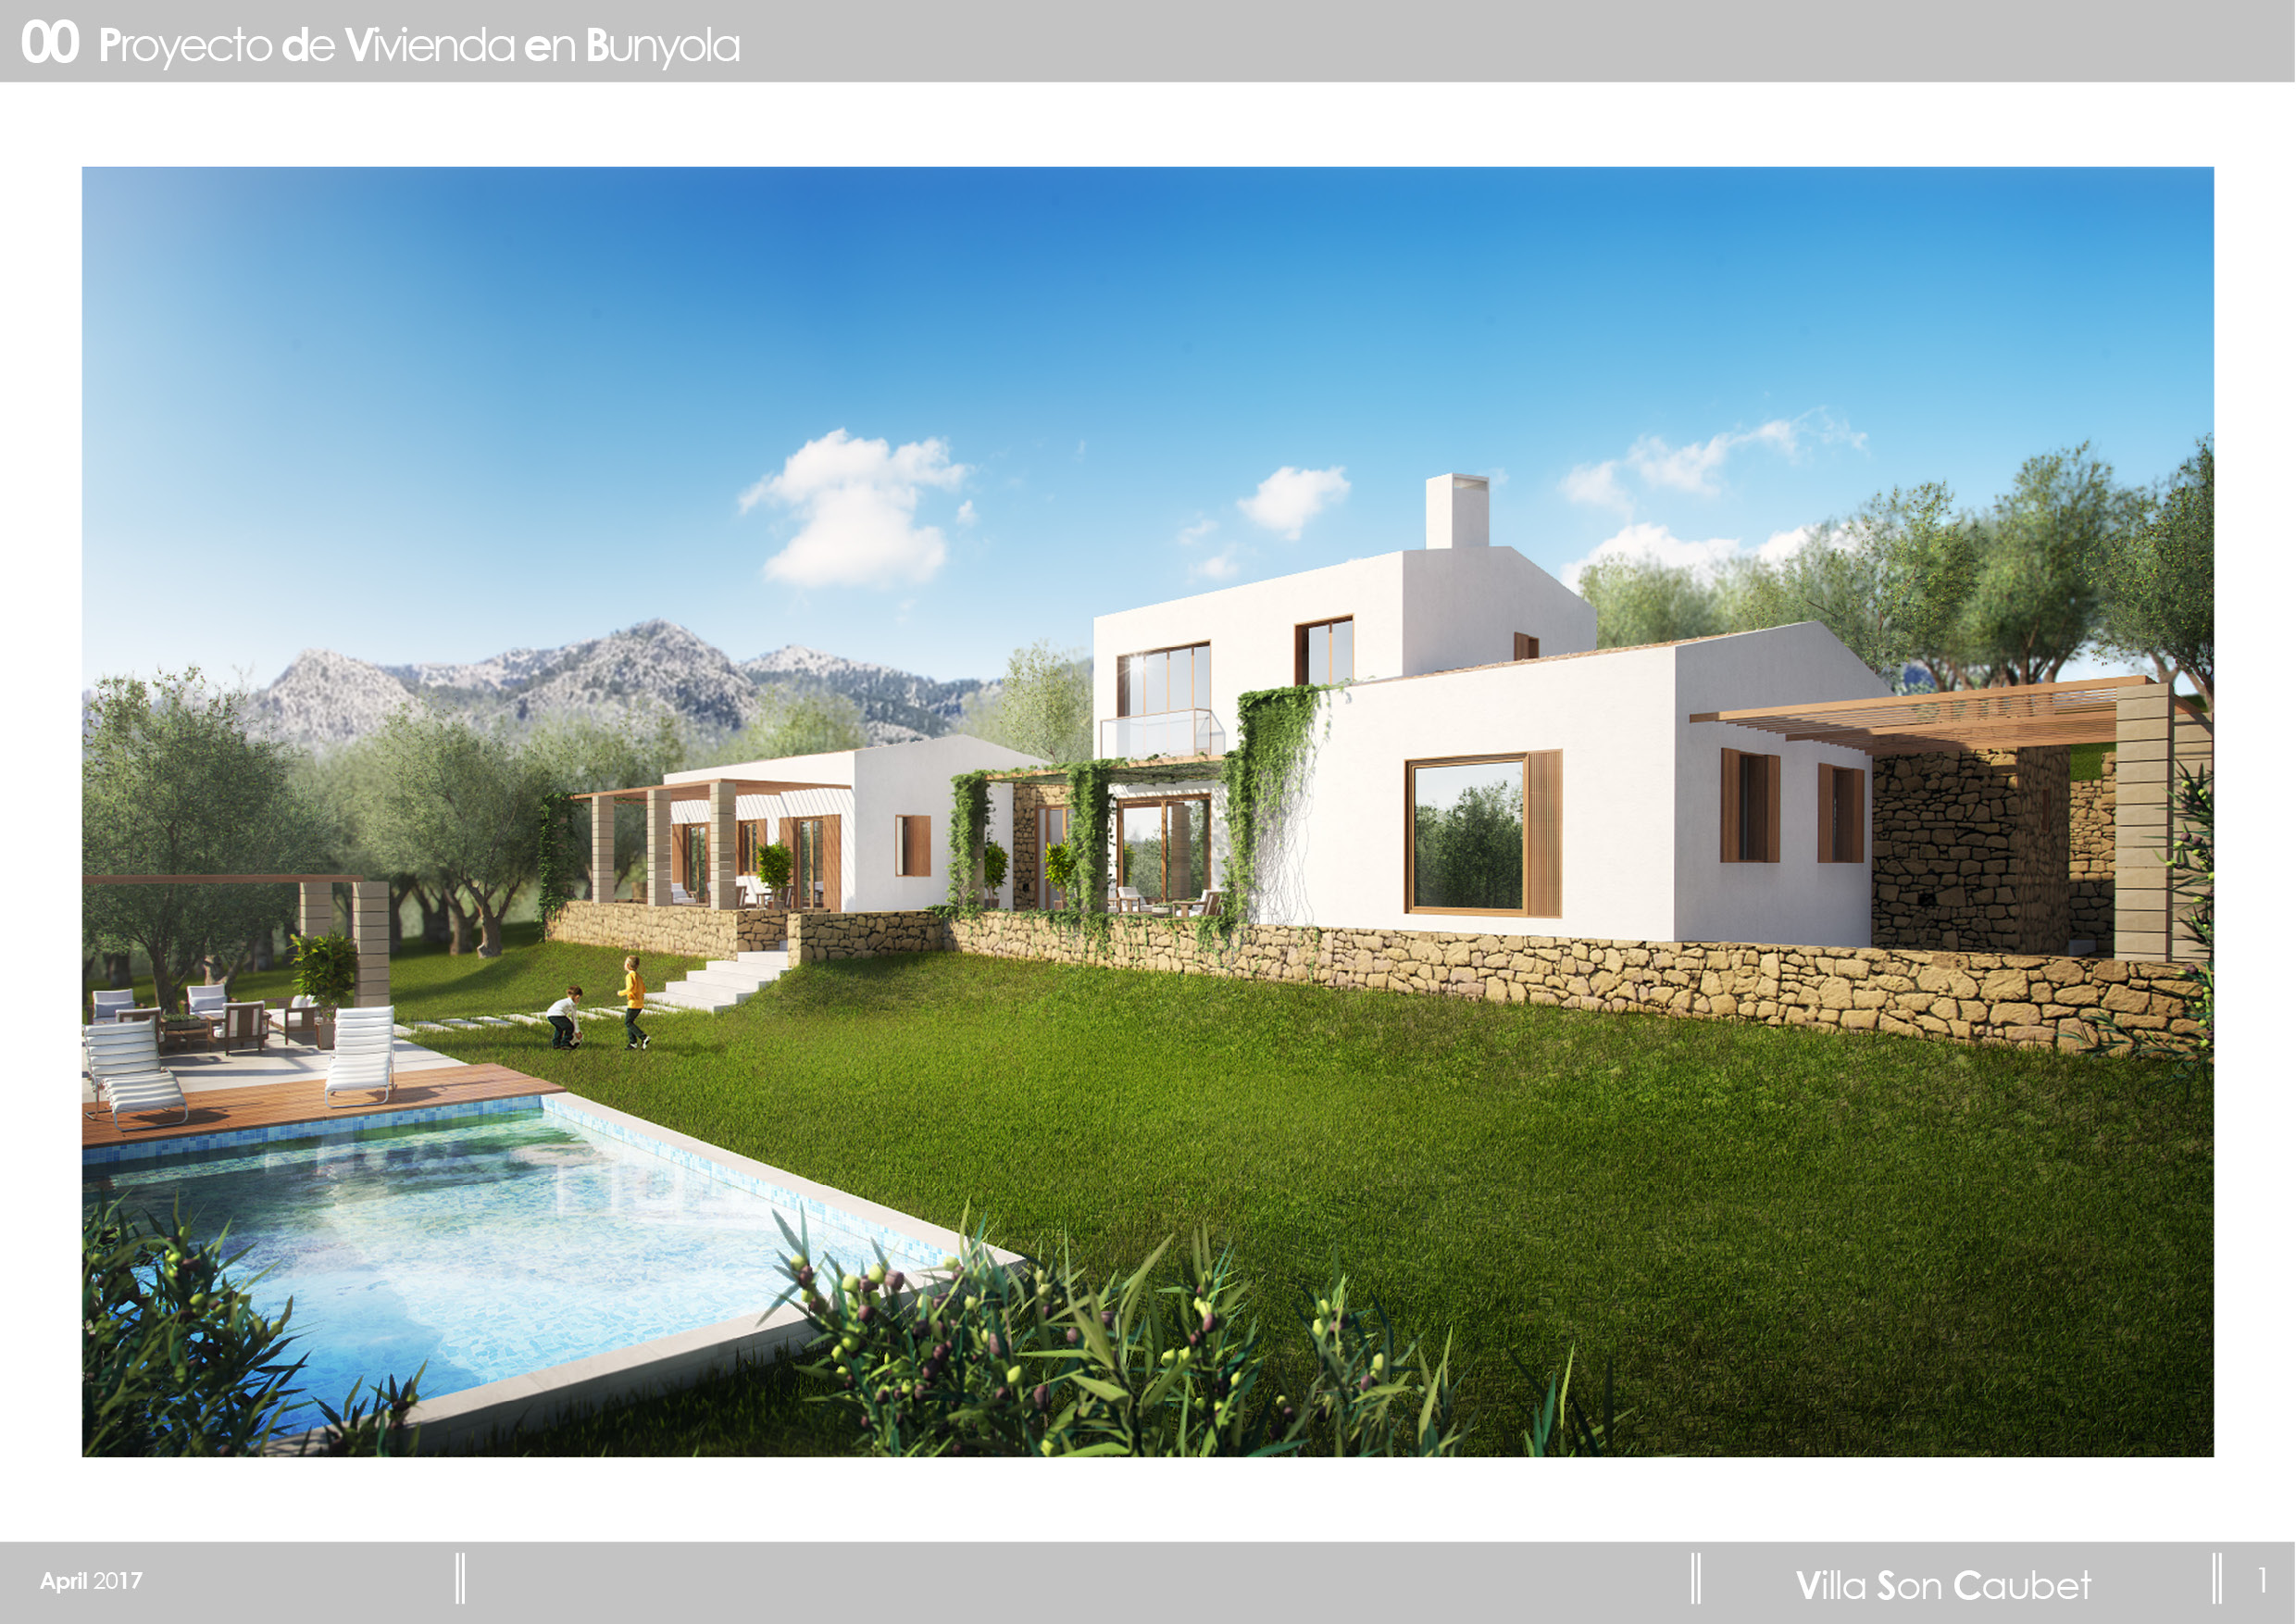 More on our Houses for Sale in Bunyola, Central Mallorca, Mallorca, Spain